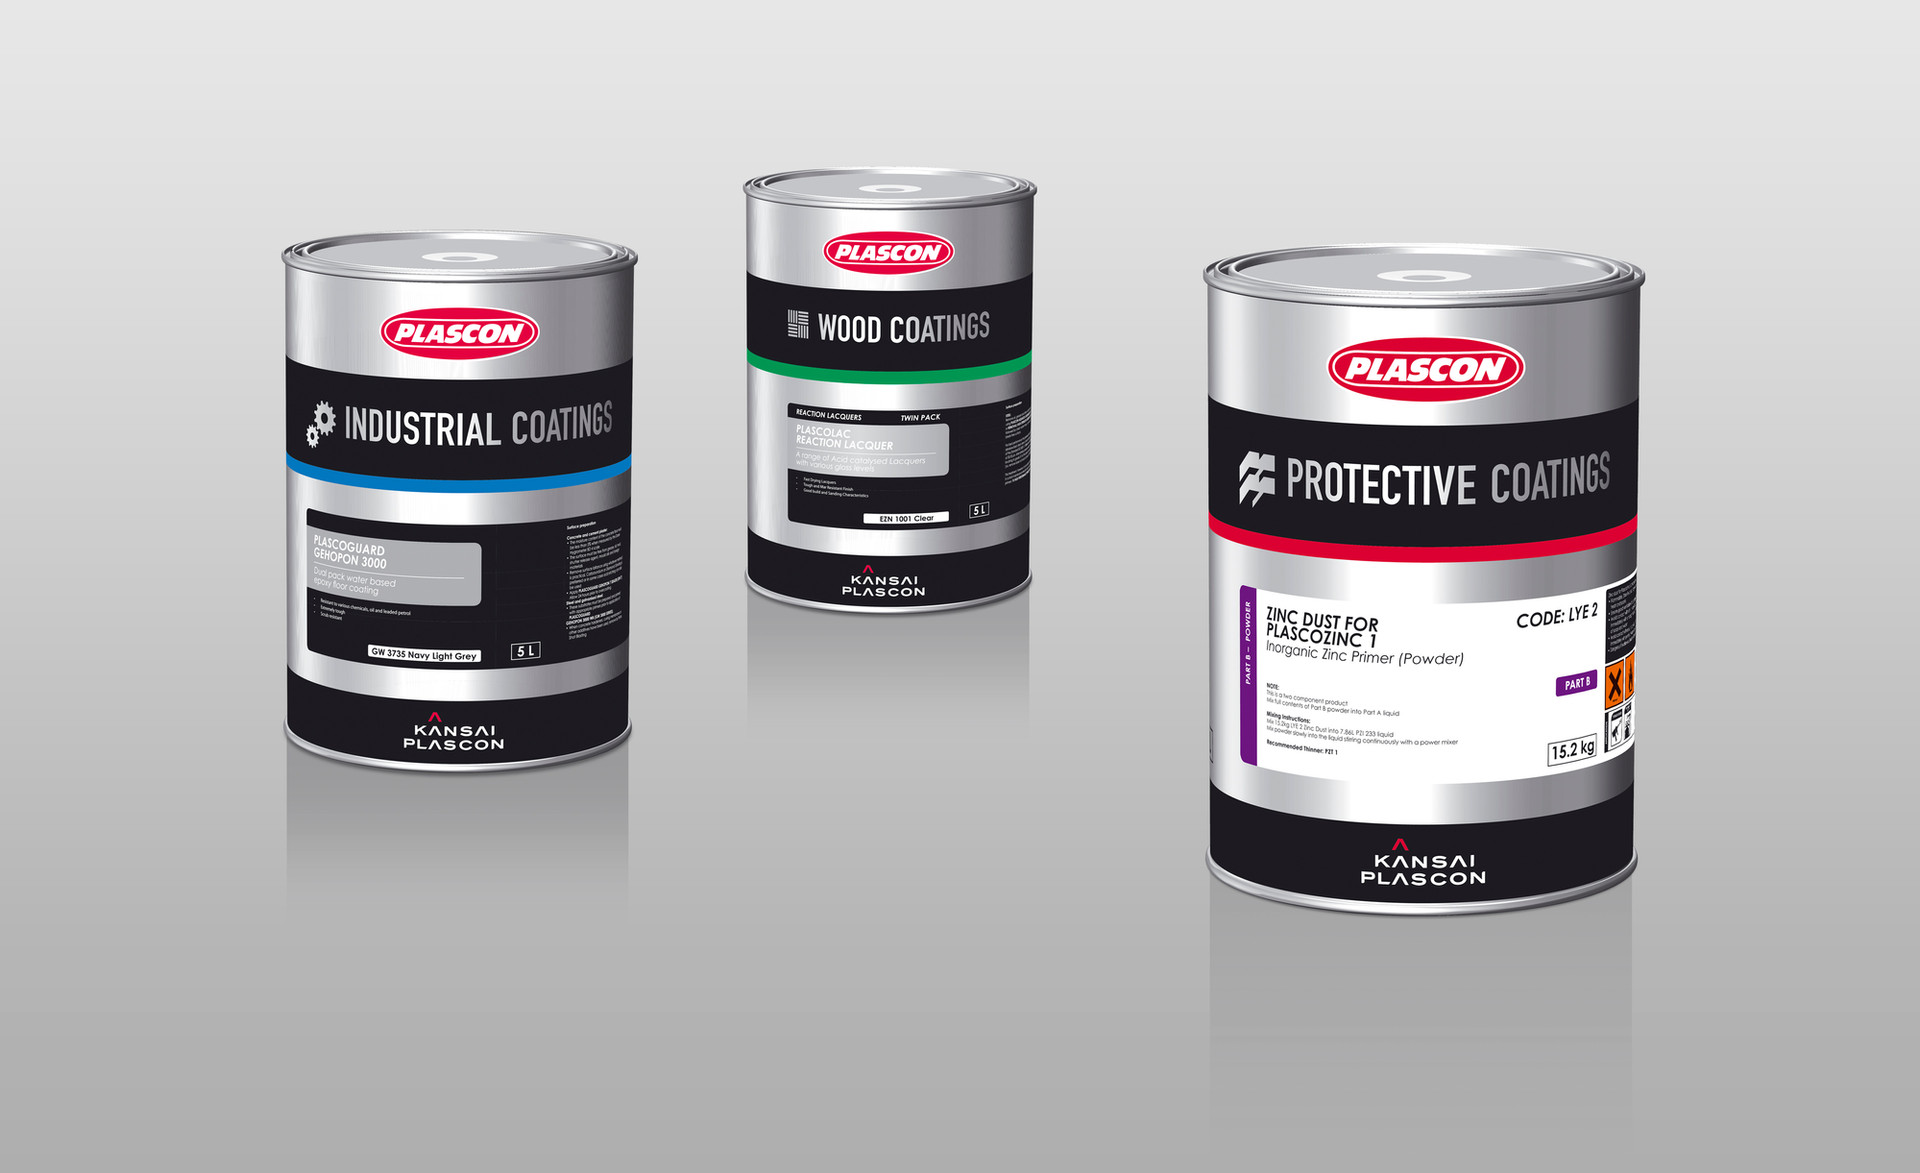 Coatings Range paint packaging